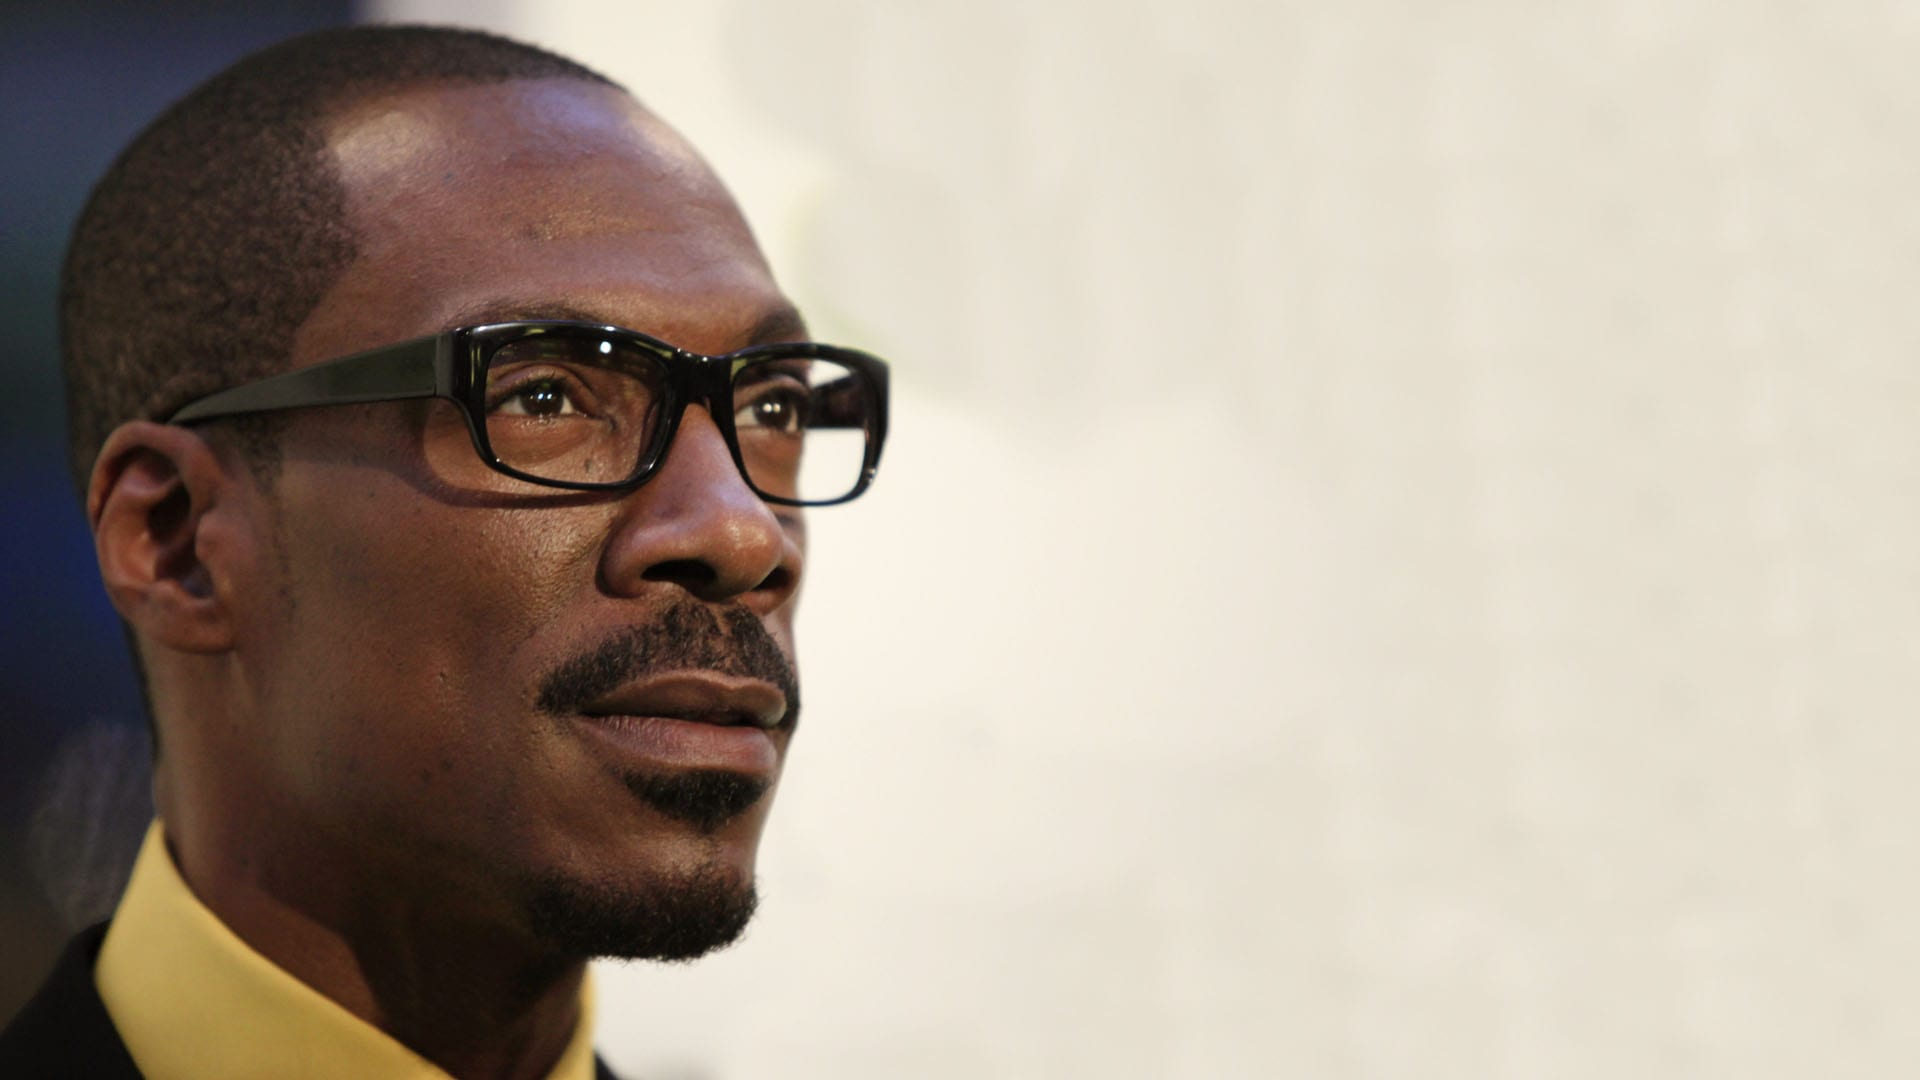 Eddie Murphy Wallpapers hd